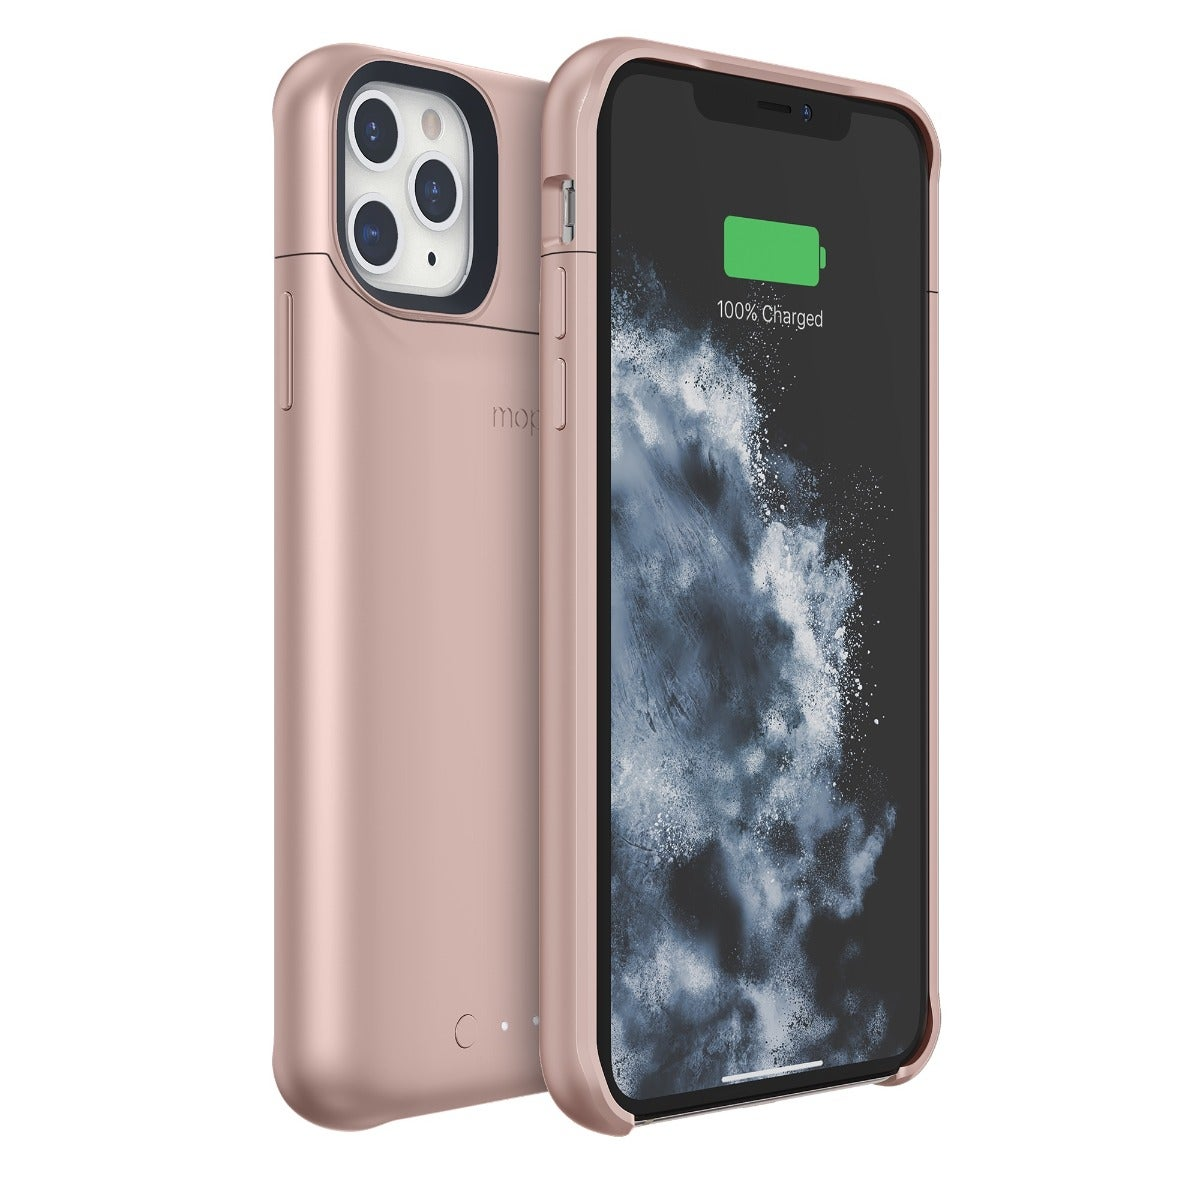 juice pack access - Apple iPhone 11 Pro Max (Blush Pink)